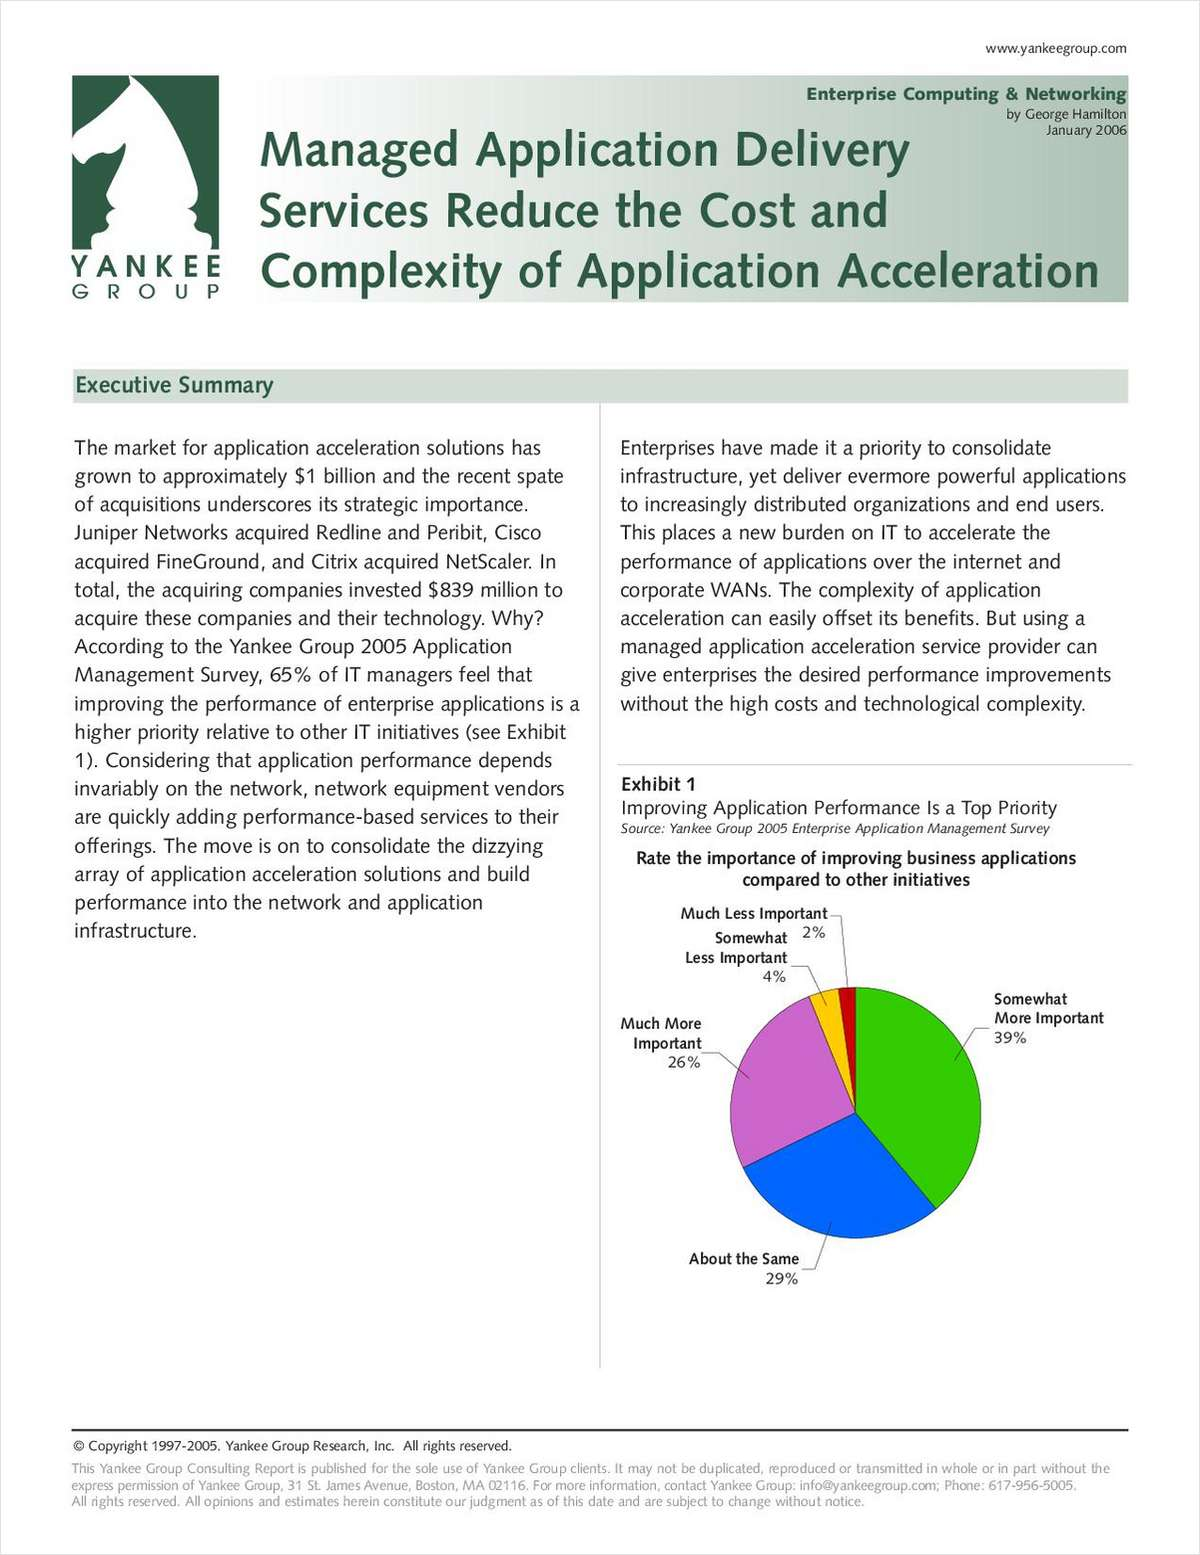 Application Acceleration: How to Reduce the Cost and Complexity with Managed Application Delivery Services